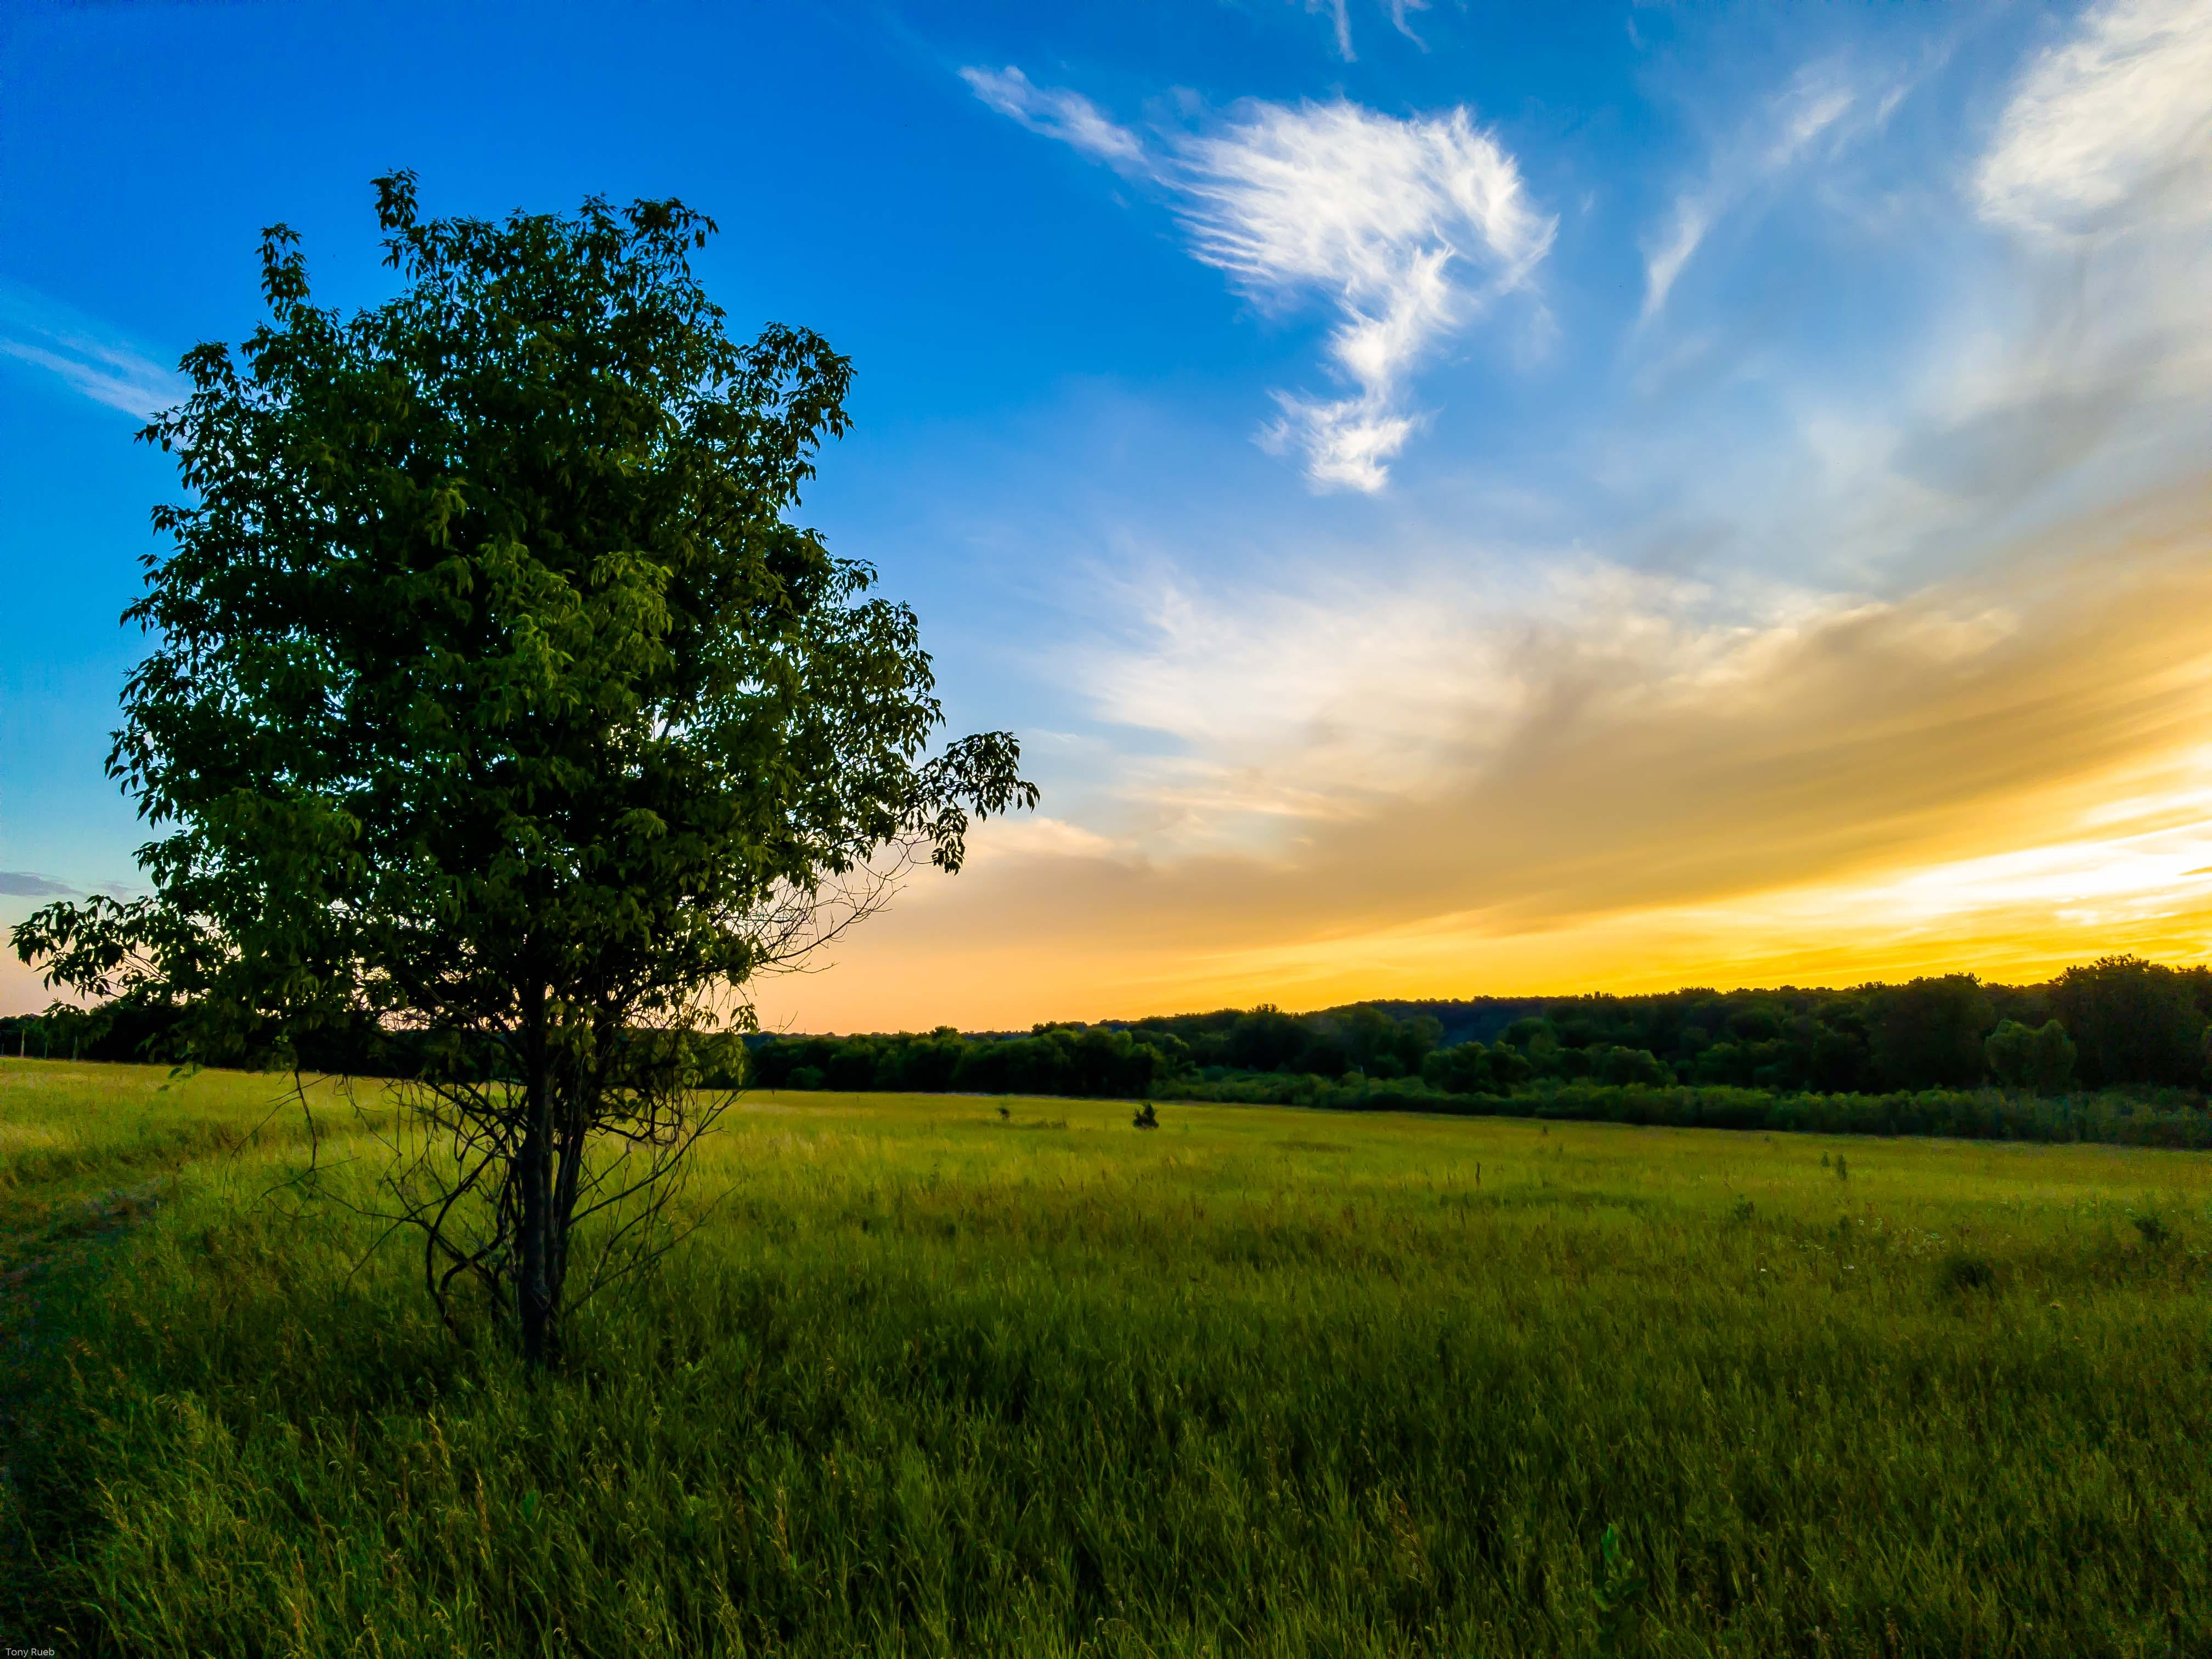 Green Tree Under Blue and White Sky